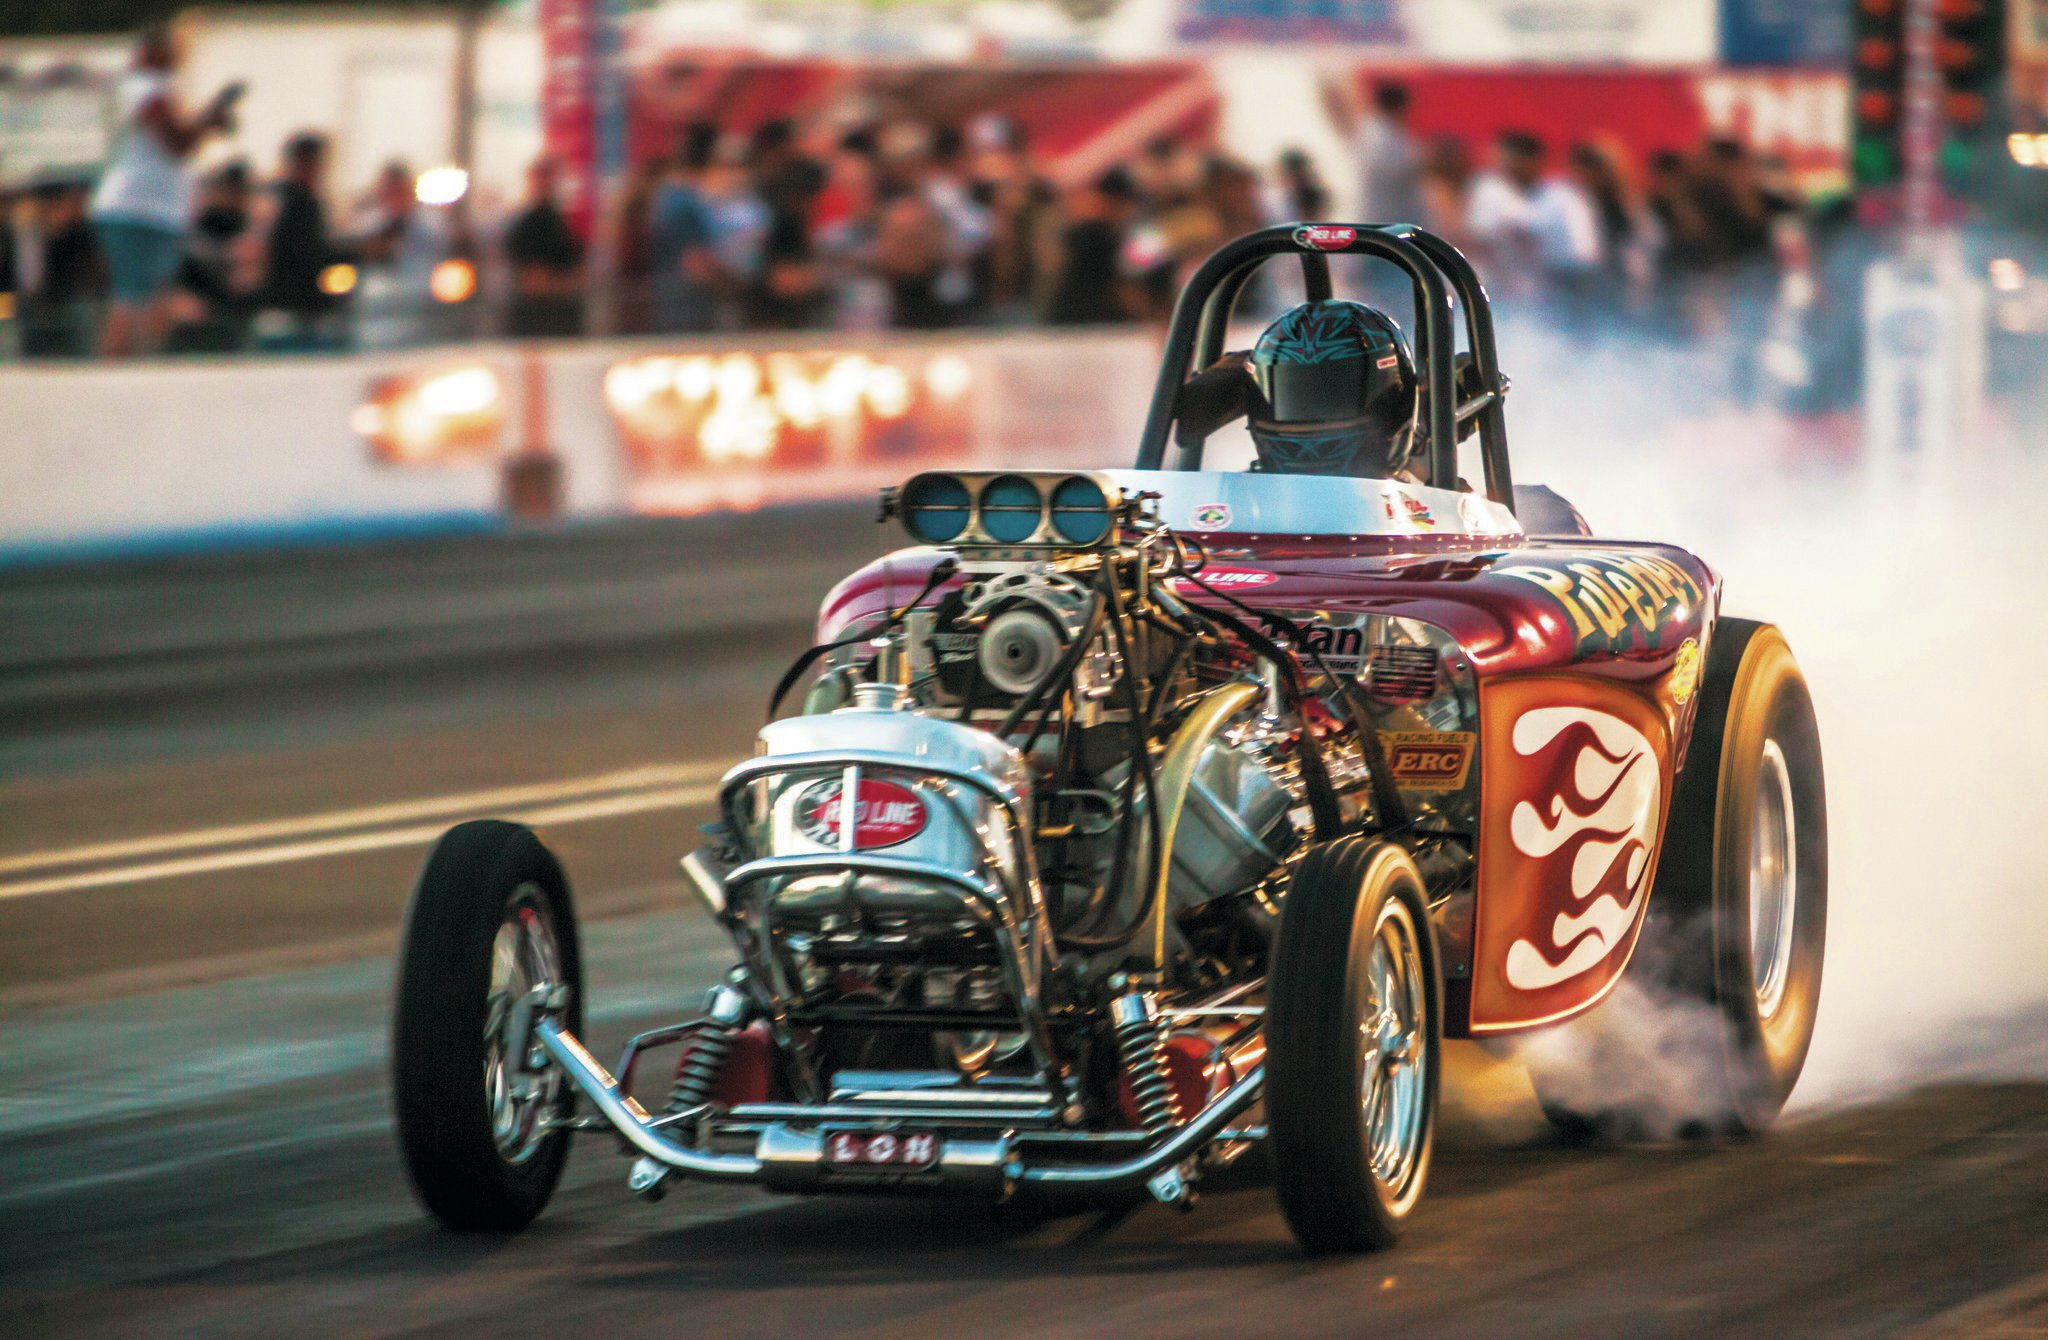 Ron August, Jr. pulled double duty at the March Meet, not only manhandling Rich Guasco's Awful Awful, but also went rounds in the Forever Young front-engine Top Fuel dragster.